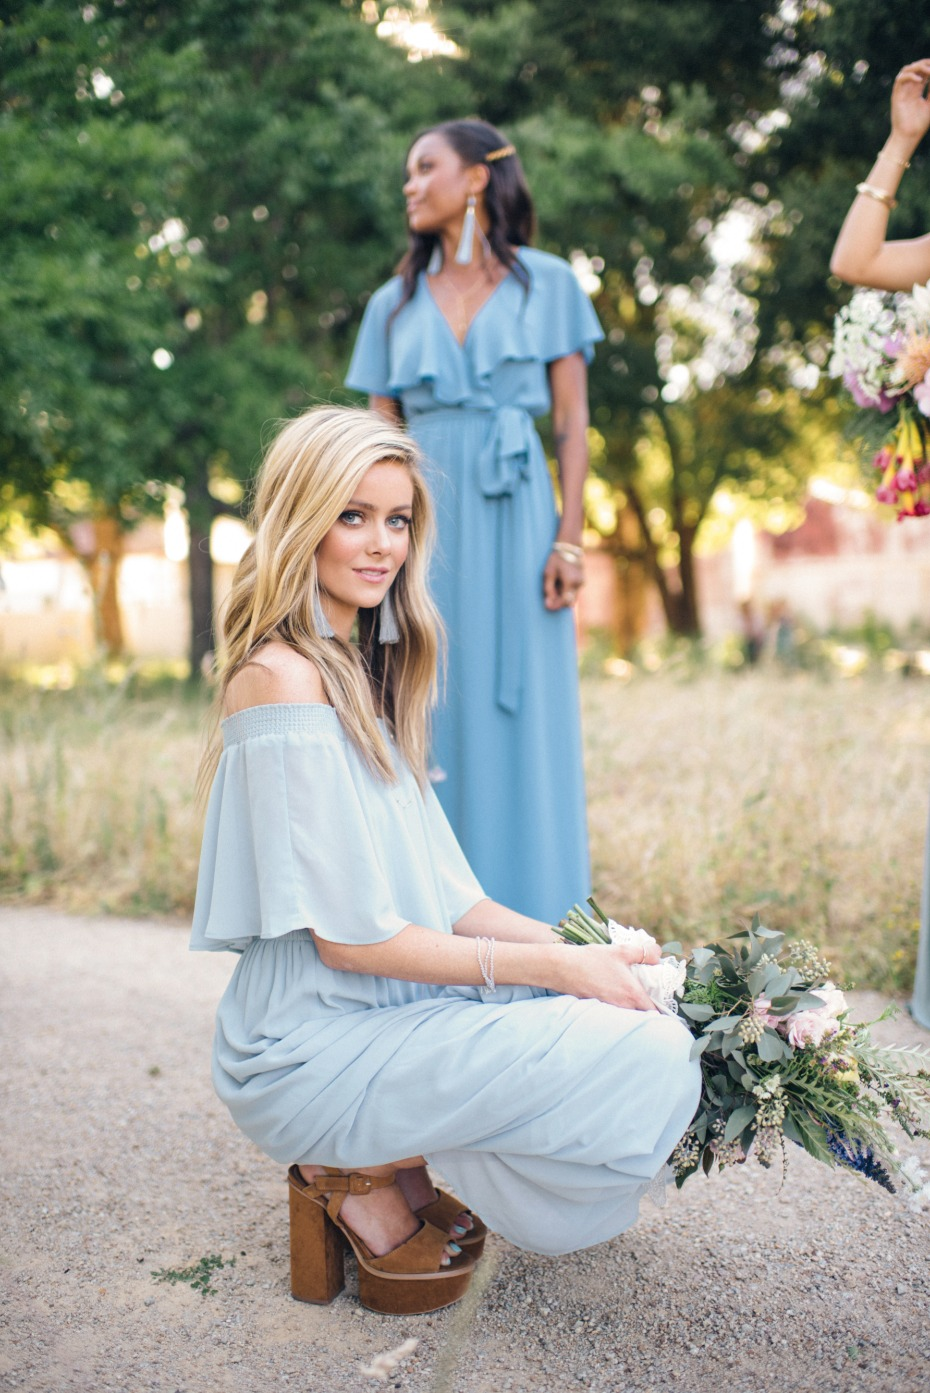 bridesmaid in chunky platforms and blue bridesmaid dress from Show Me Your Mumu